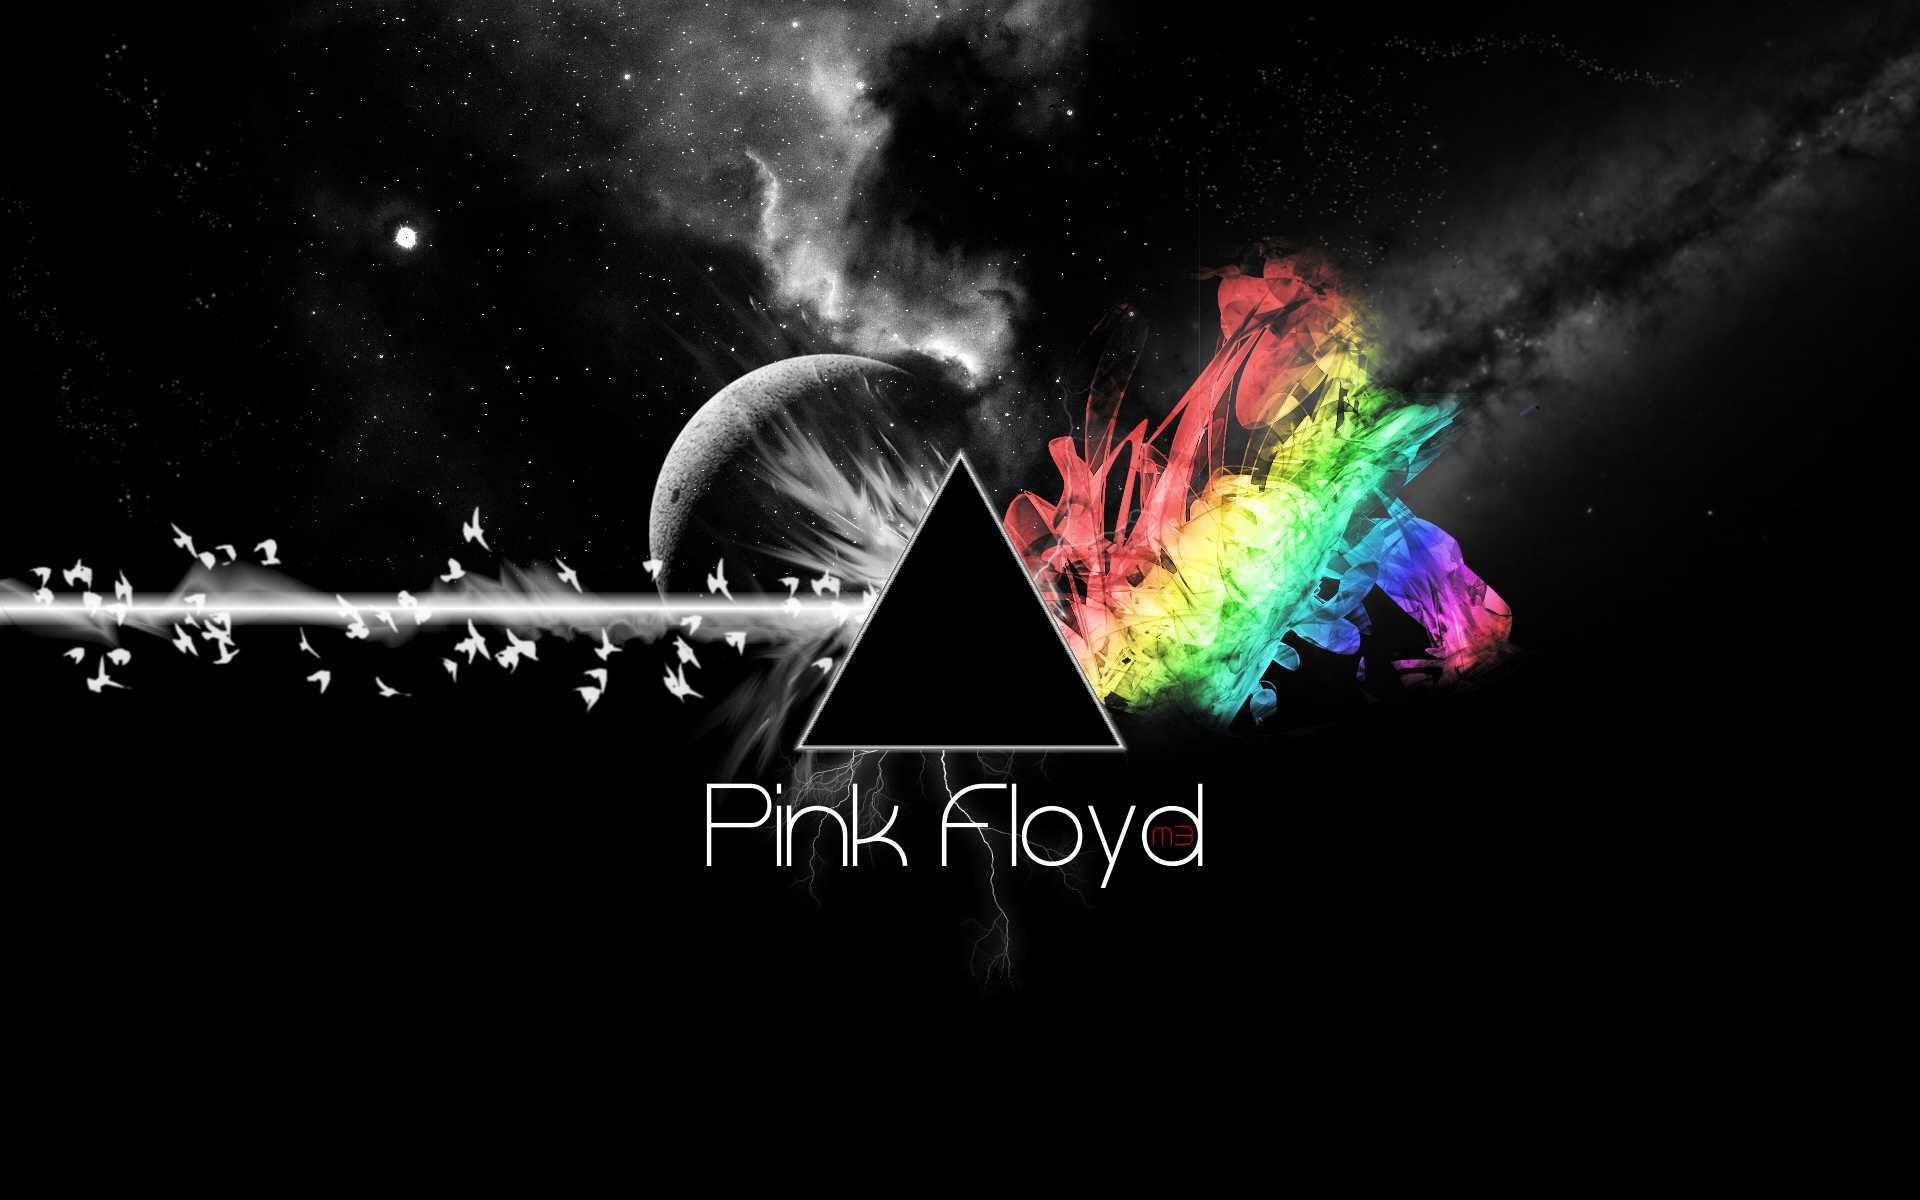 Hd Pink Floyd Hard Rock Classic Retro Bands Groups Album Covers